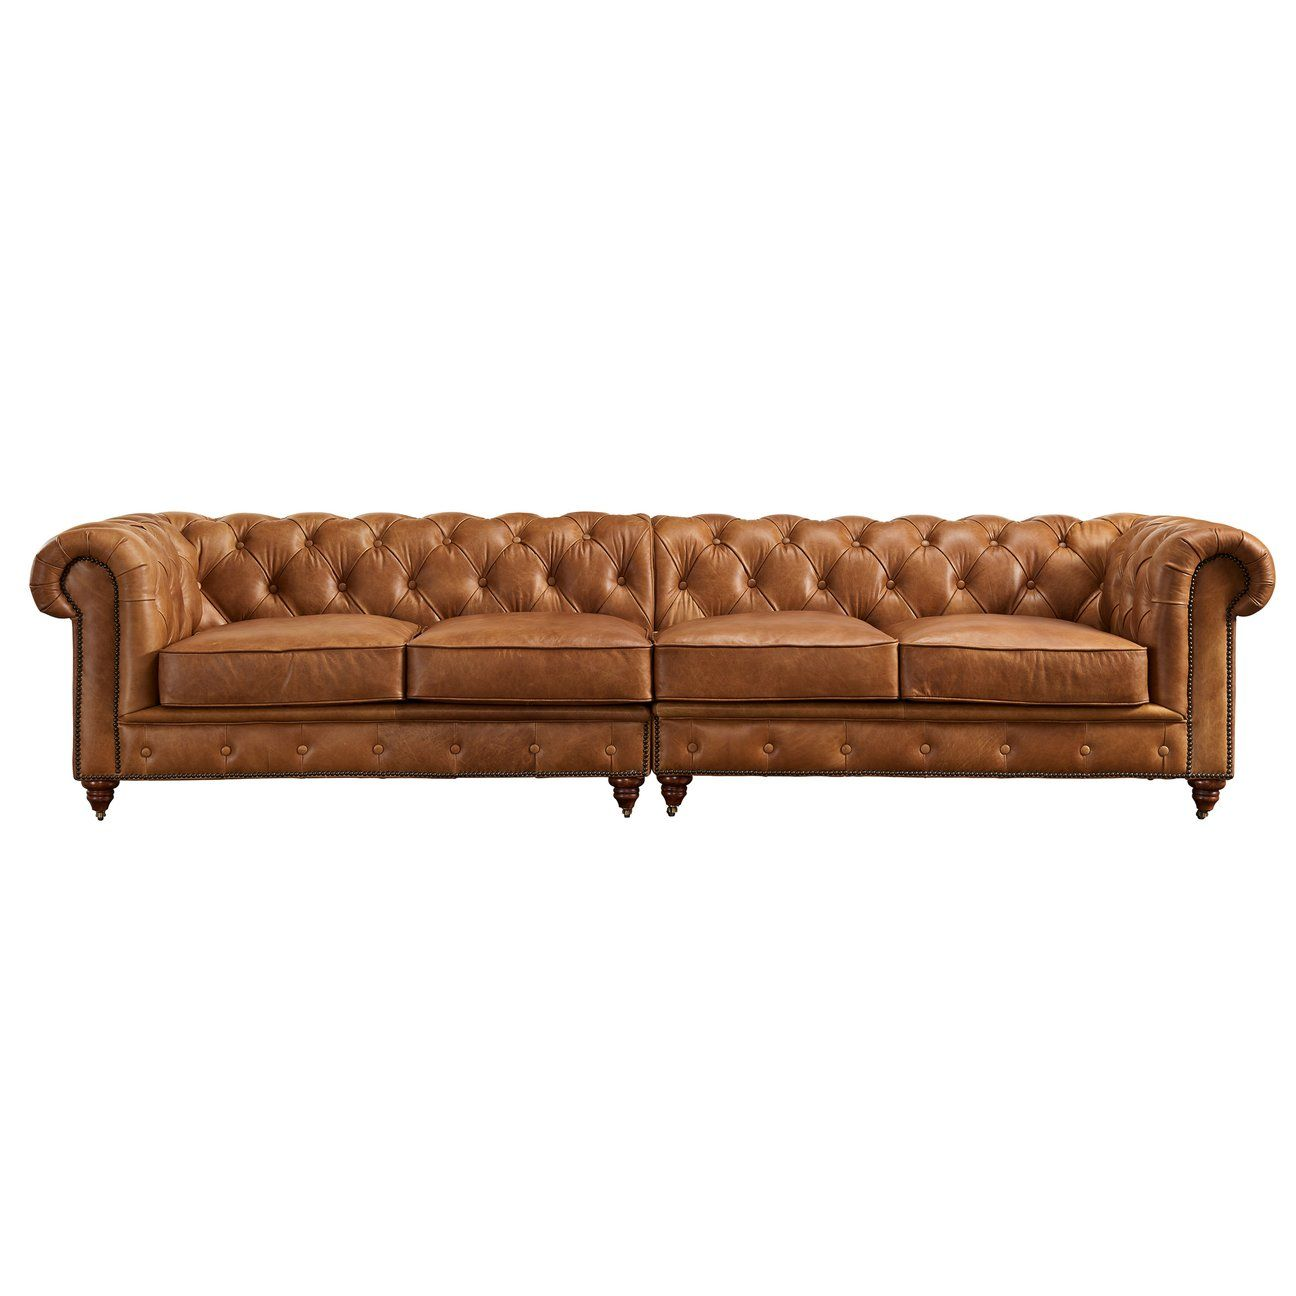 Century Chesterfield Sofa Light Brown Leather 118 Chesterfield Sofa Deep Chesterfield Sofa Leather Chesterfield Sofa